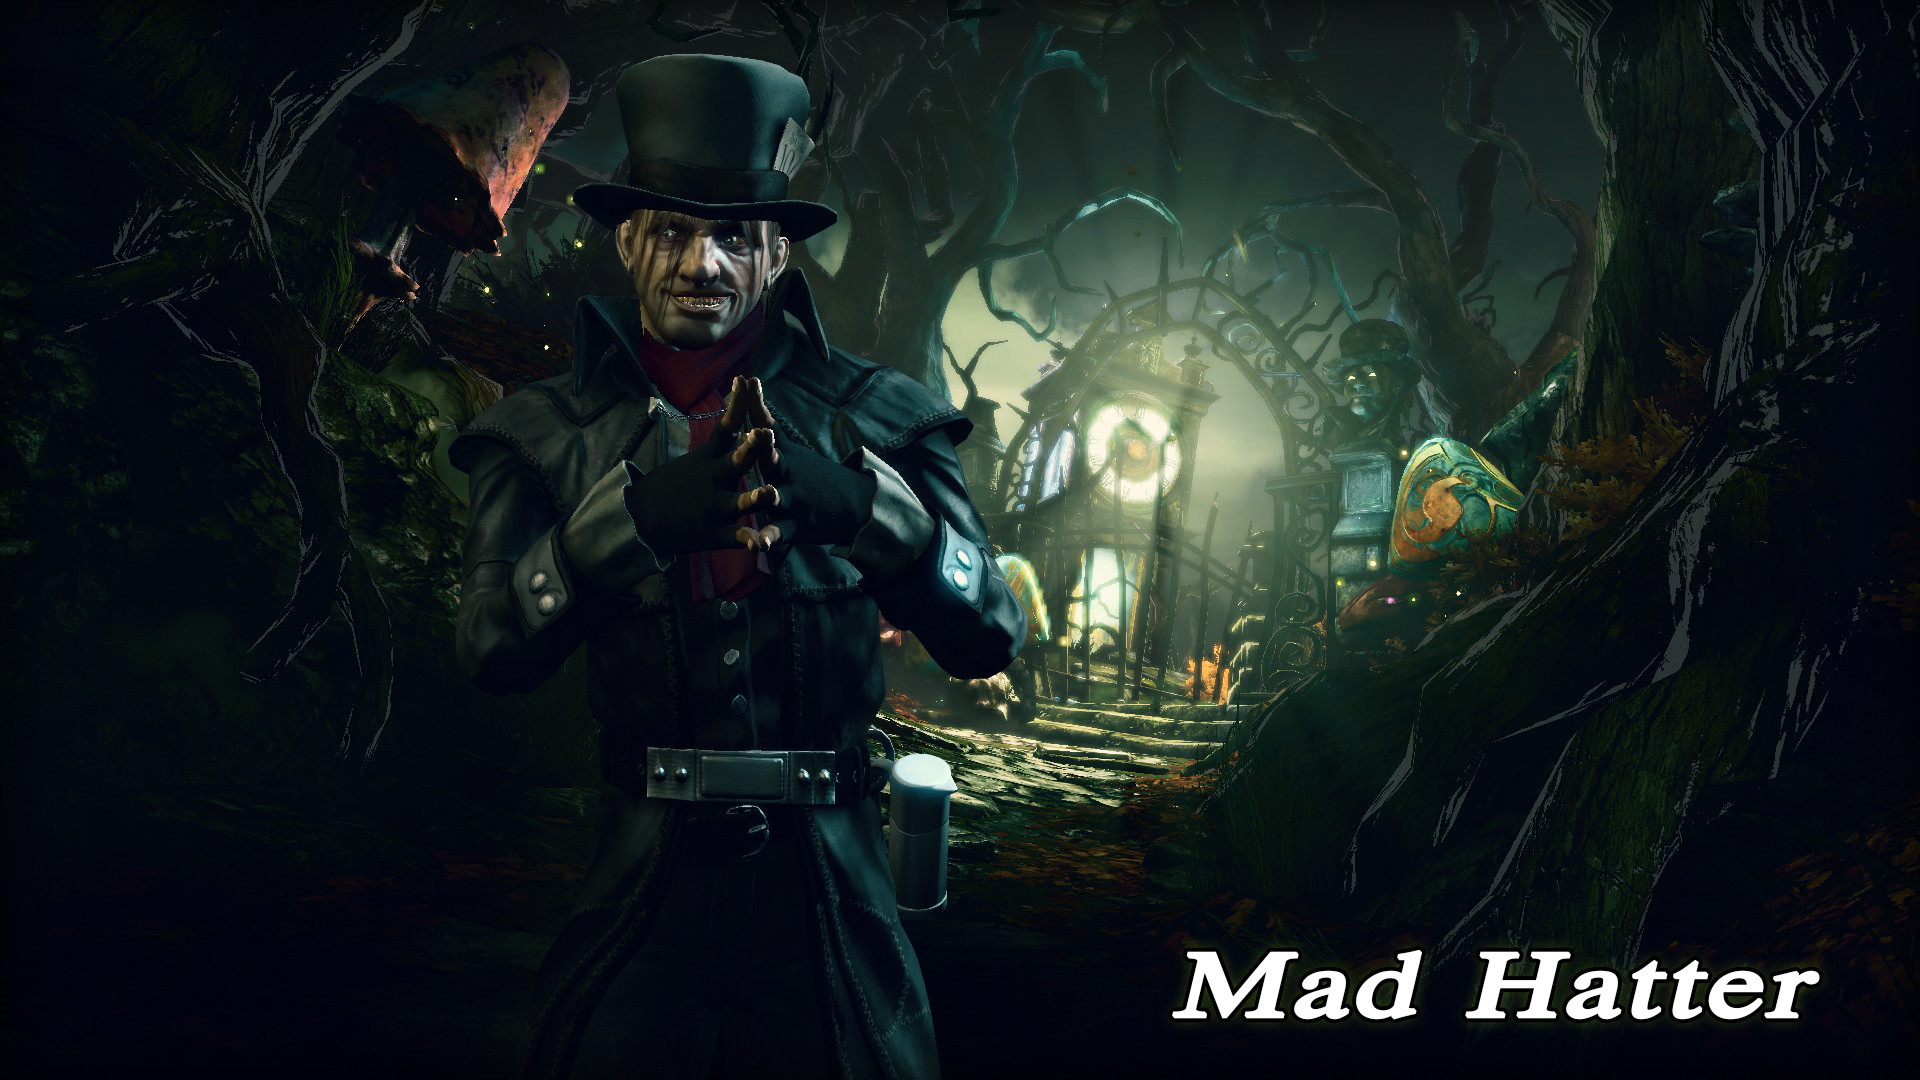 1920x1080 Click to edit. Mad Hatter Wallpaper